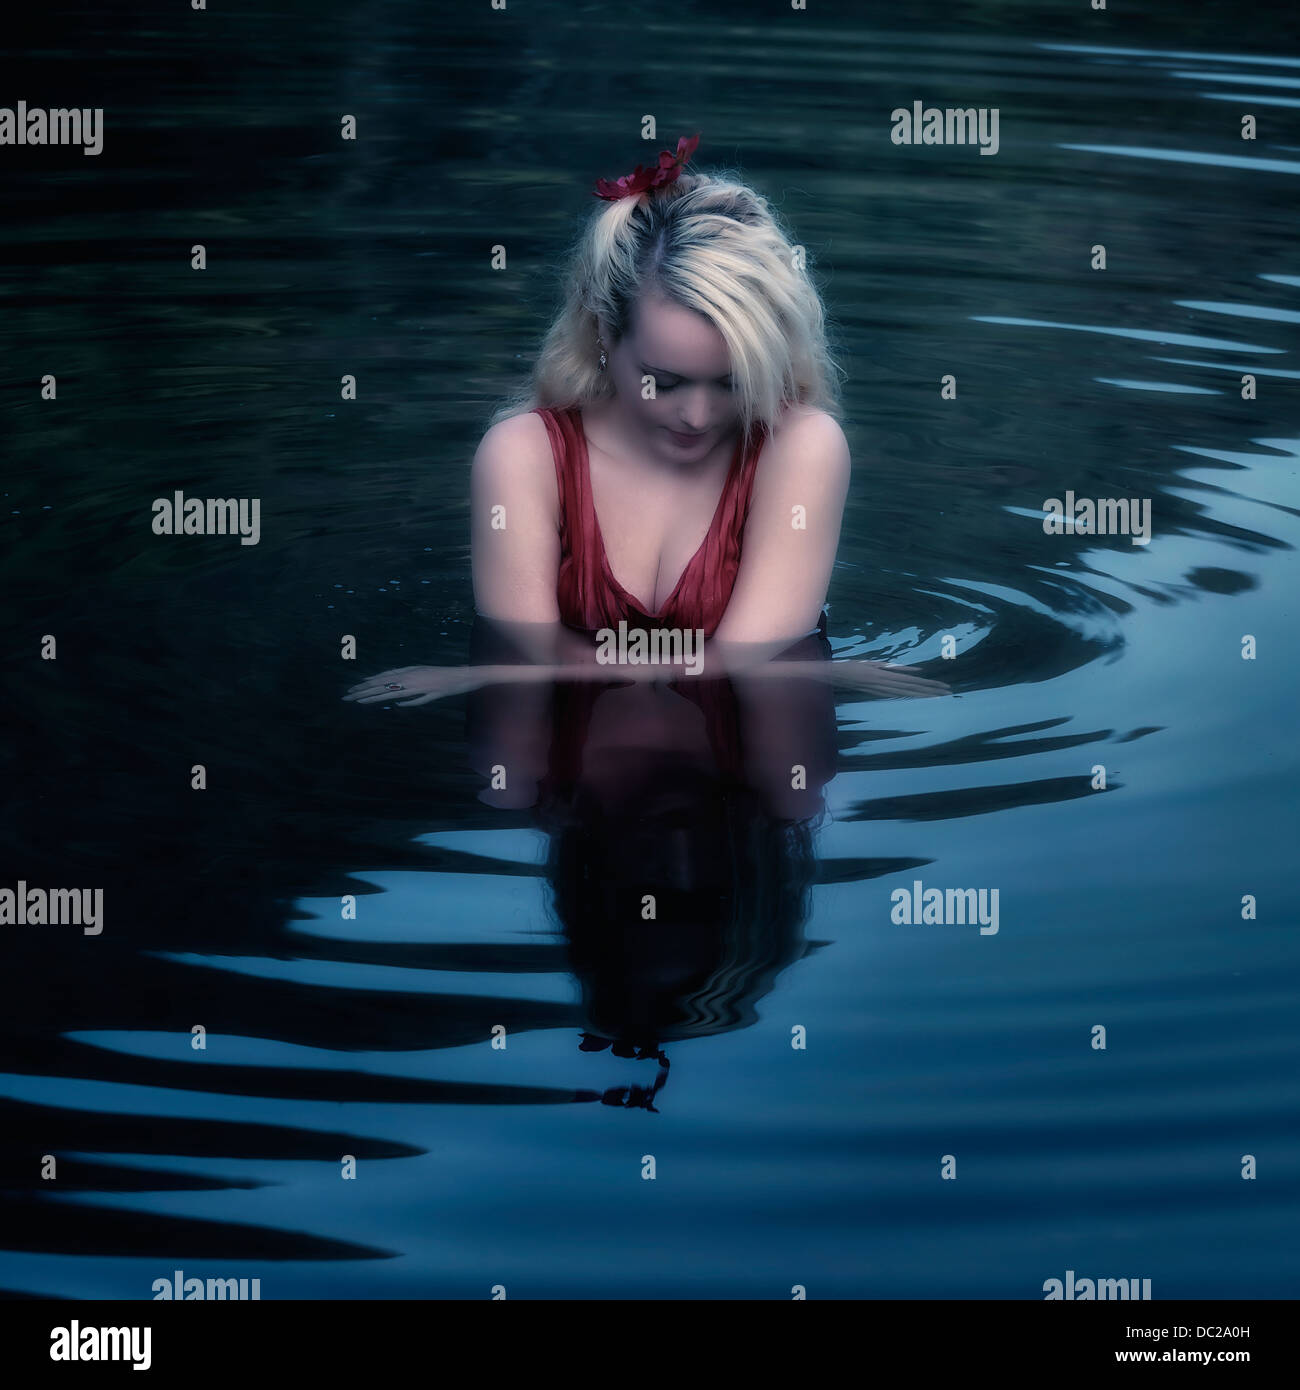 a woman in a red dress is swimming in a lake - Stock Image